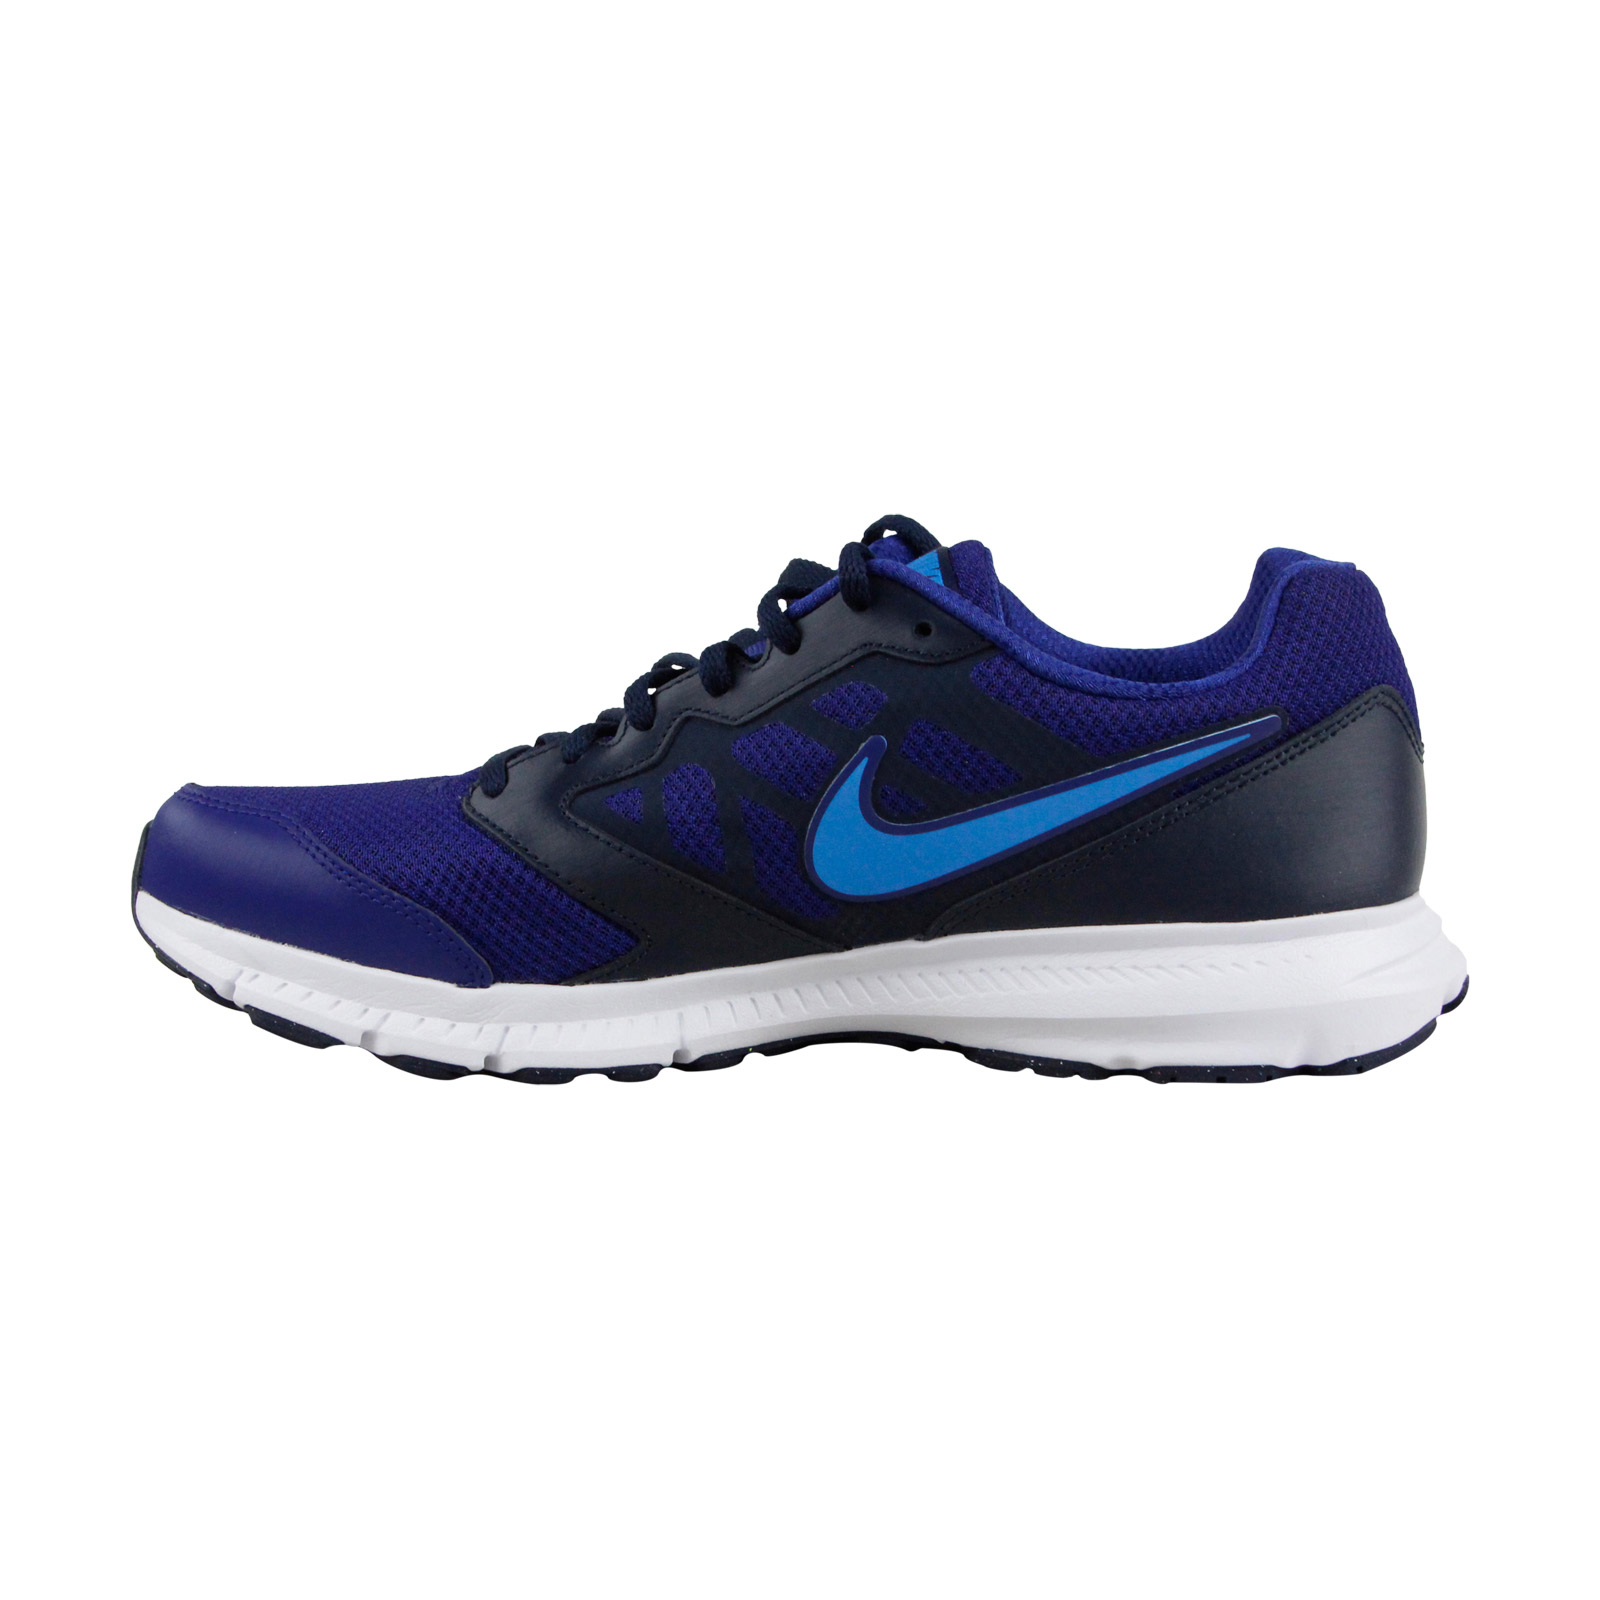 Nike Downshifter 6 Mens Running Blau Mesh Athletic Lace Up Running Mens Schuhes 1cef87